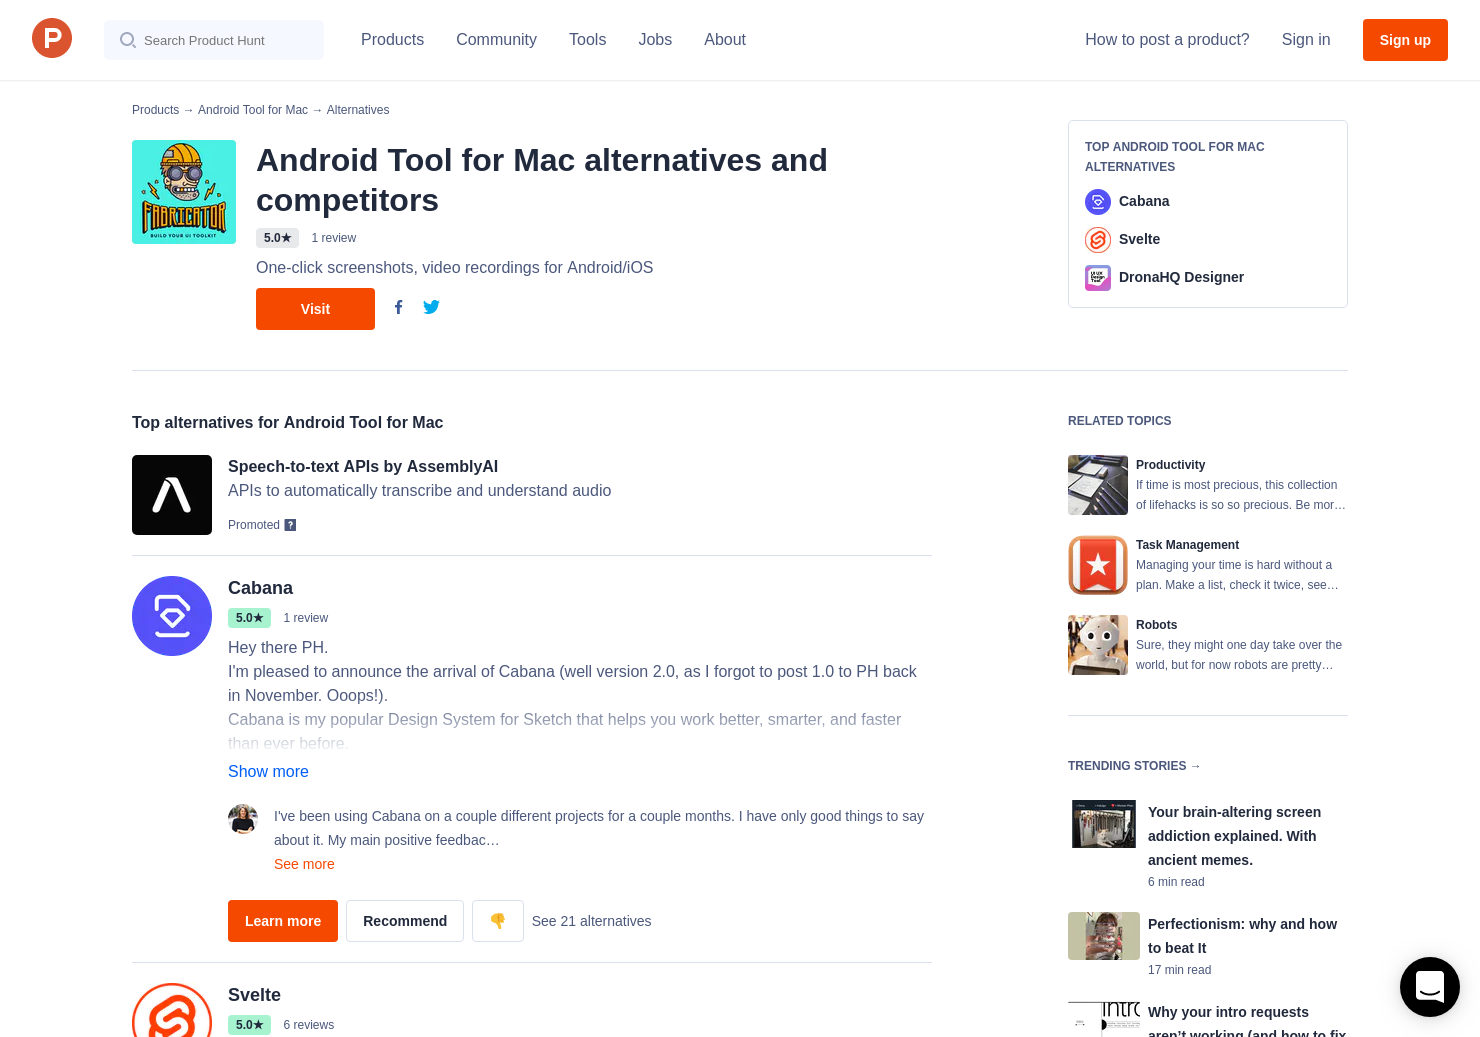 3 Alternatives to Fabricator | Product Hunt